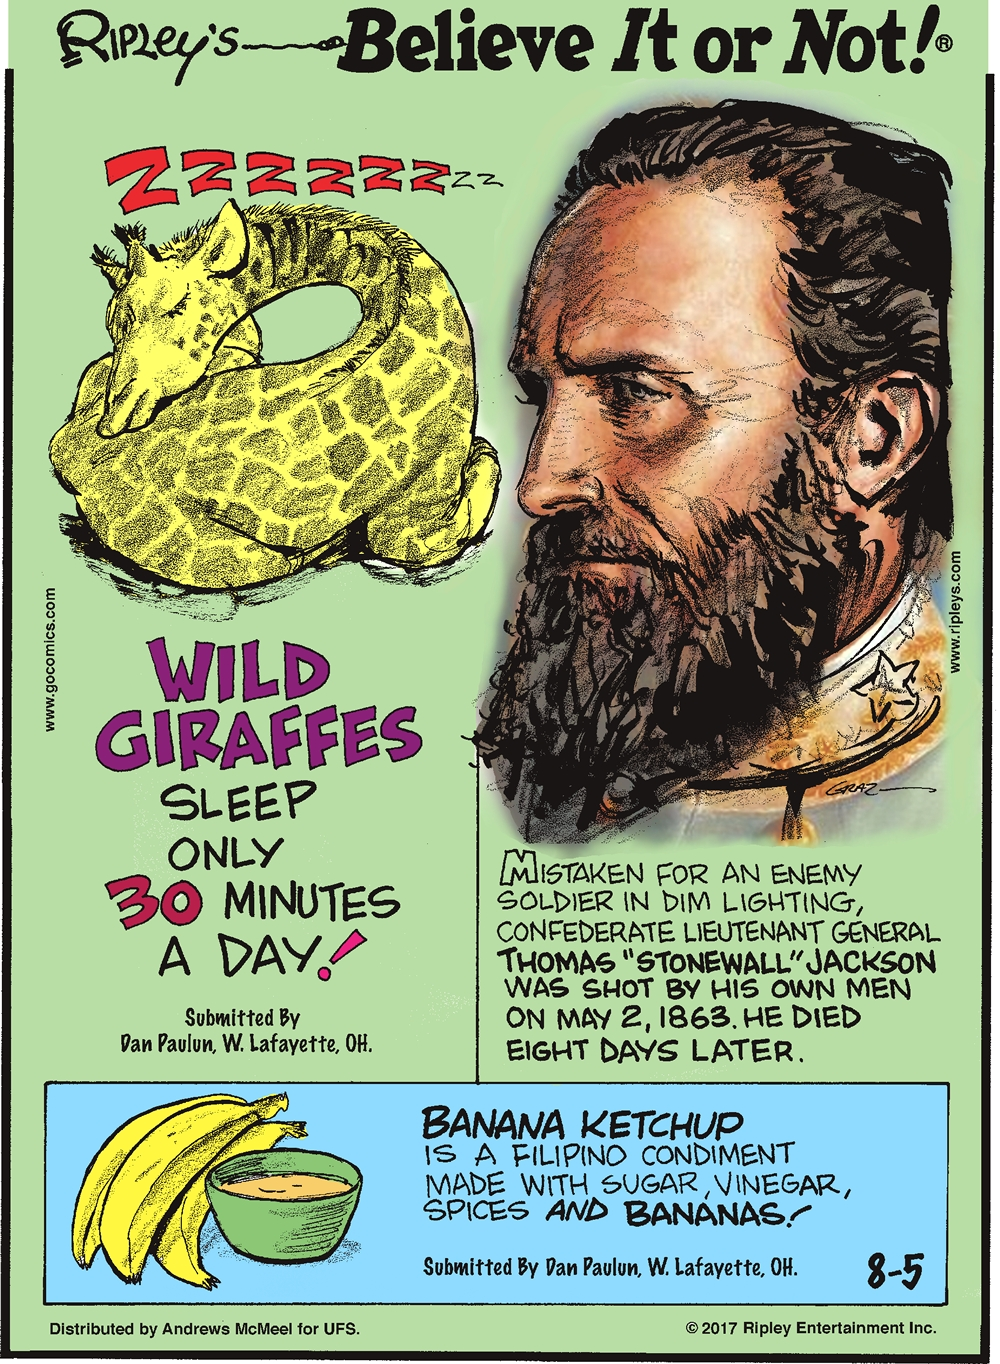 """Wild giraffes sleep only 30 minutes a day! Submitted by Dan Paulun, W. Lafayette, OH.-------------------- Mistaken for an enemy soldier in dim lighting, Confederate Lieutenant General Thomas """"Stonewall"""" Jackson was shot by his own men on May 2, 1863. He died eight days later.-------------------- Banana ketchup is a Filipino condiment made with sugar, vinegar, spices and bananas! Submitted by Dan Paulun, W. Lafayette, OH."""